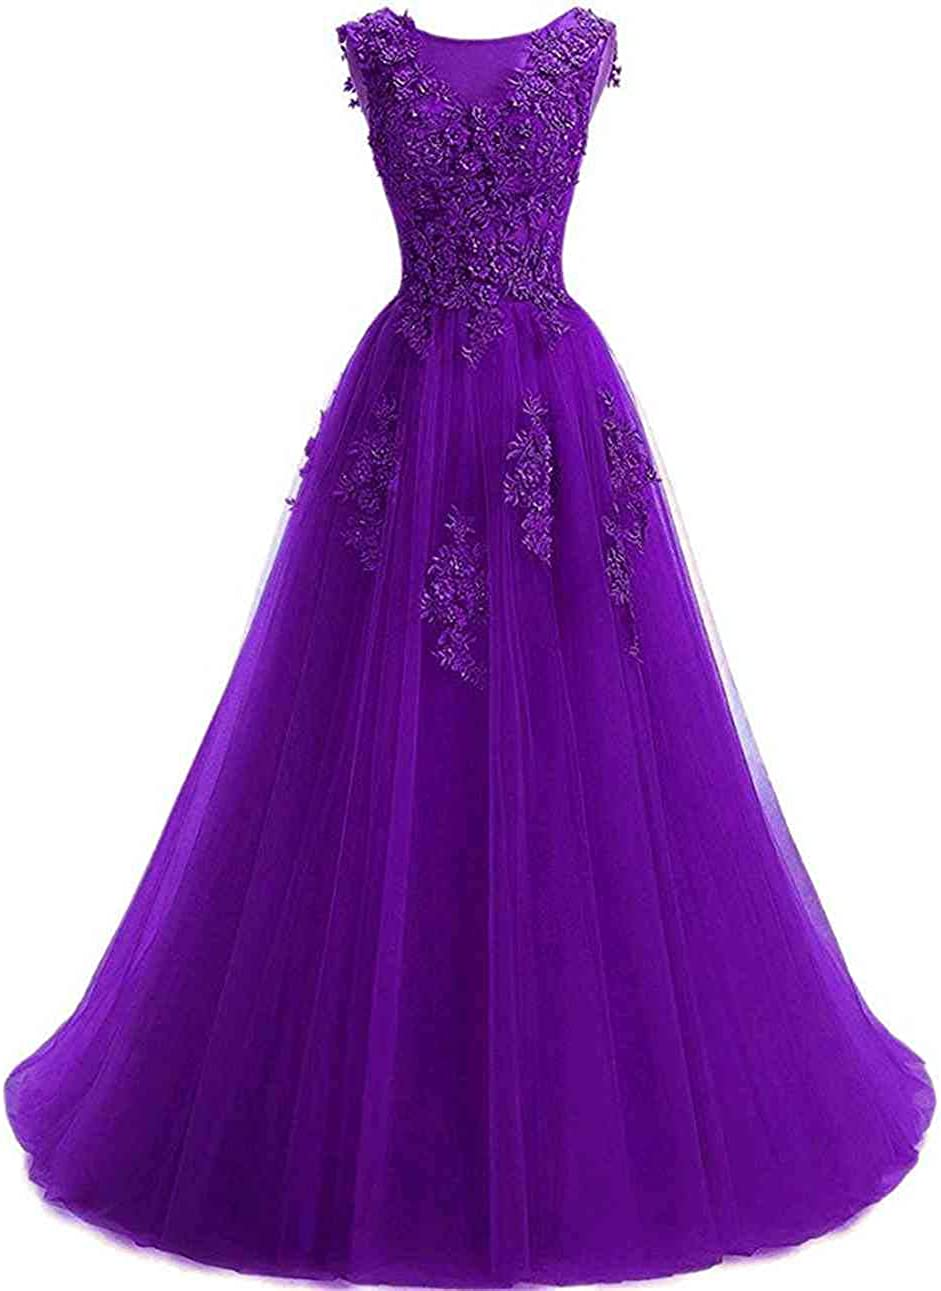 Huifany Prom Dresses for Women Floral Lace Applique Scoop Formal Evening Party Dress Long Tulle Gown